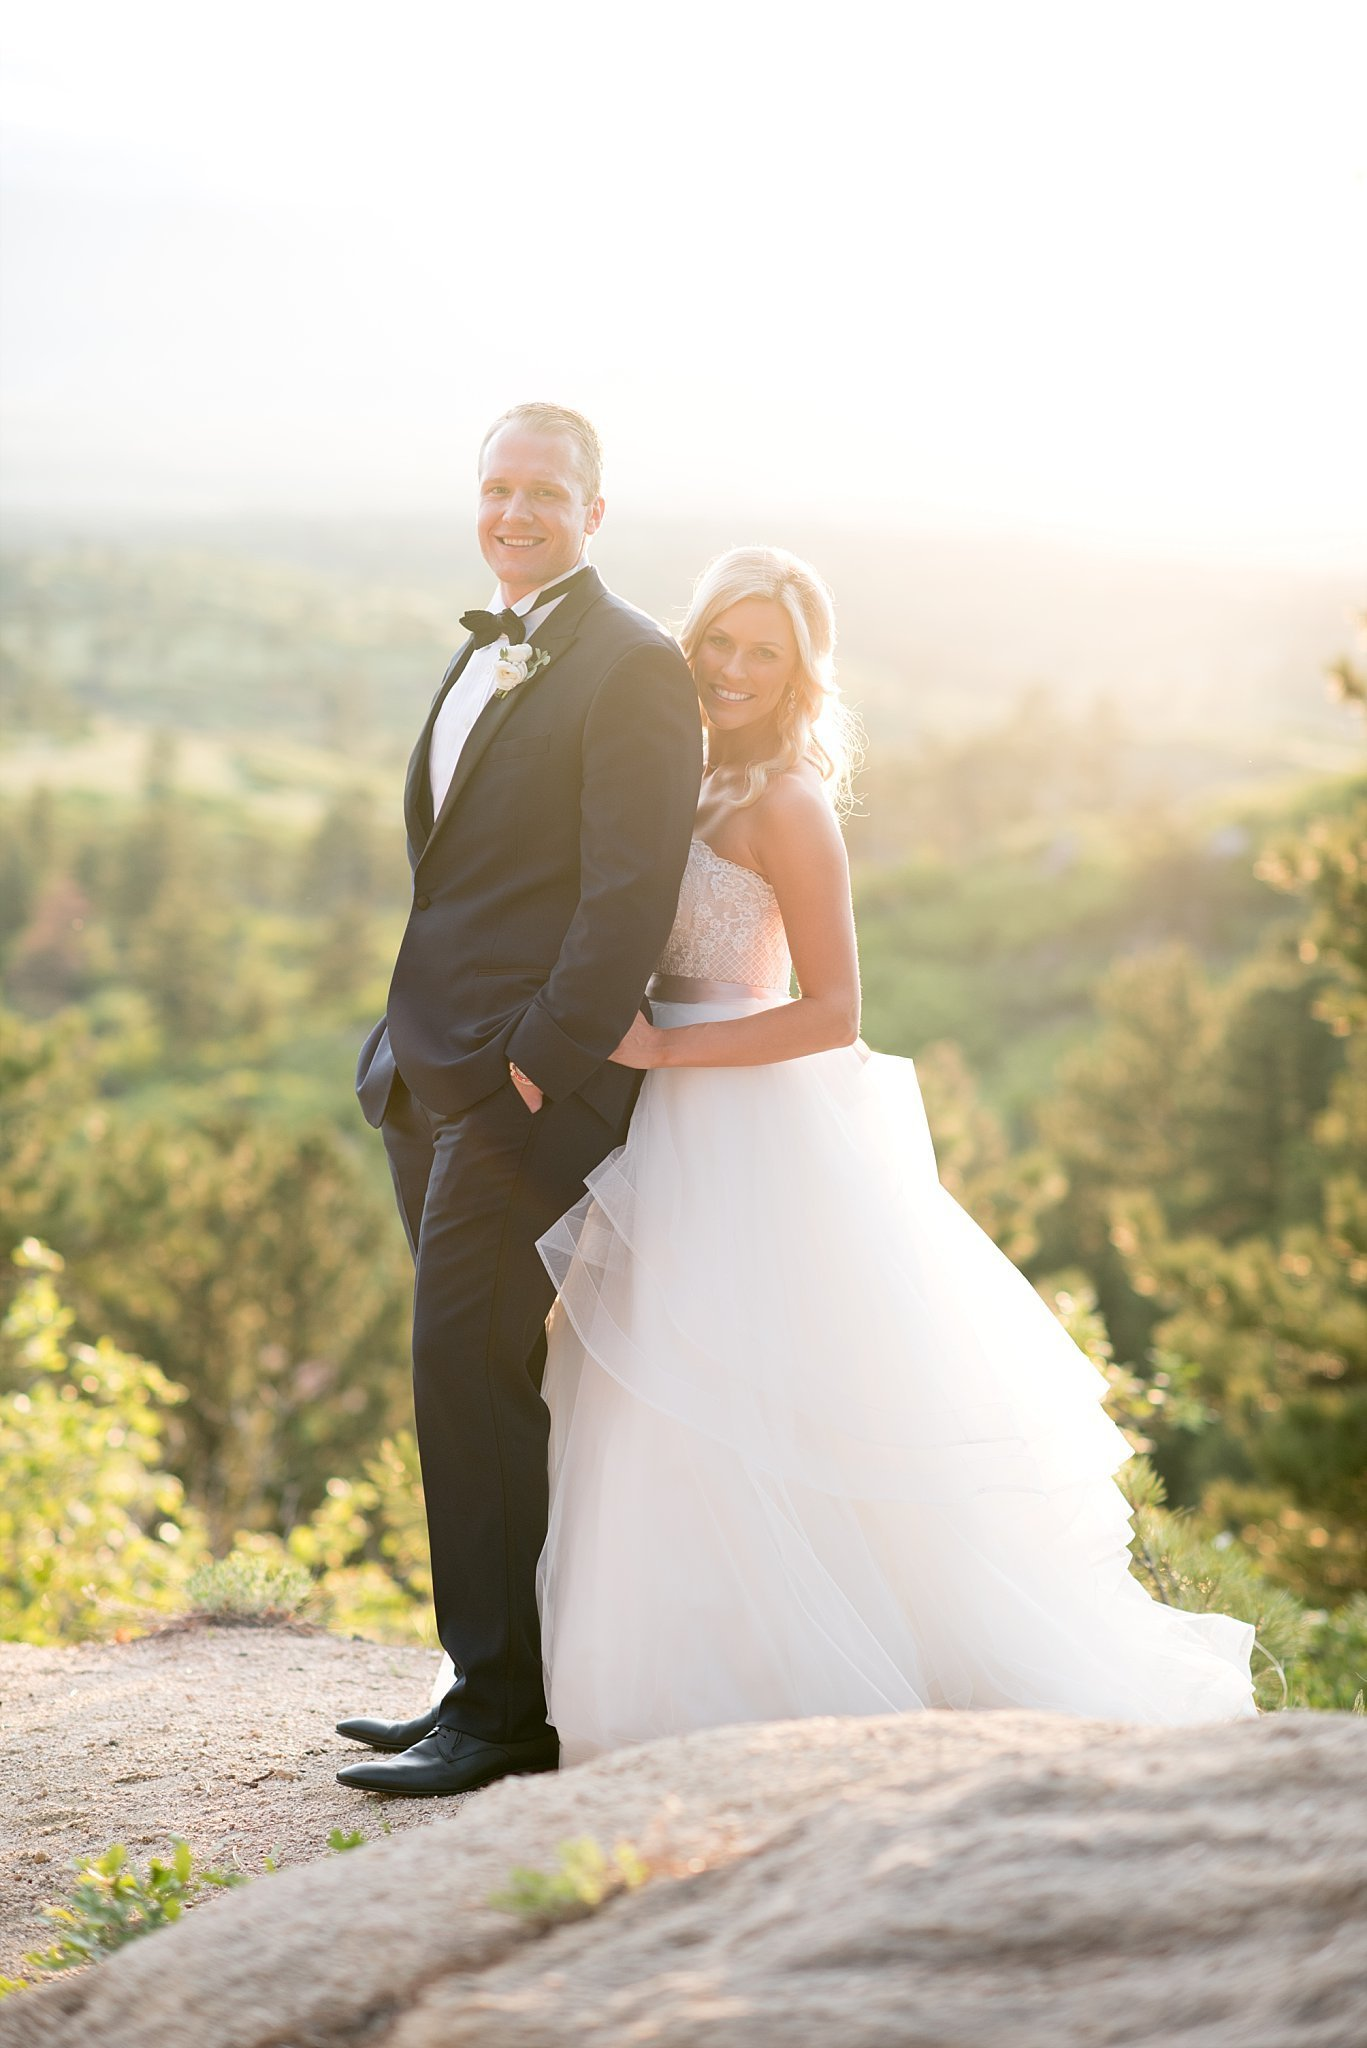 Elizabeth Ann Photography, Denver Wedding Photographer_2672